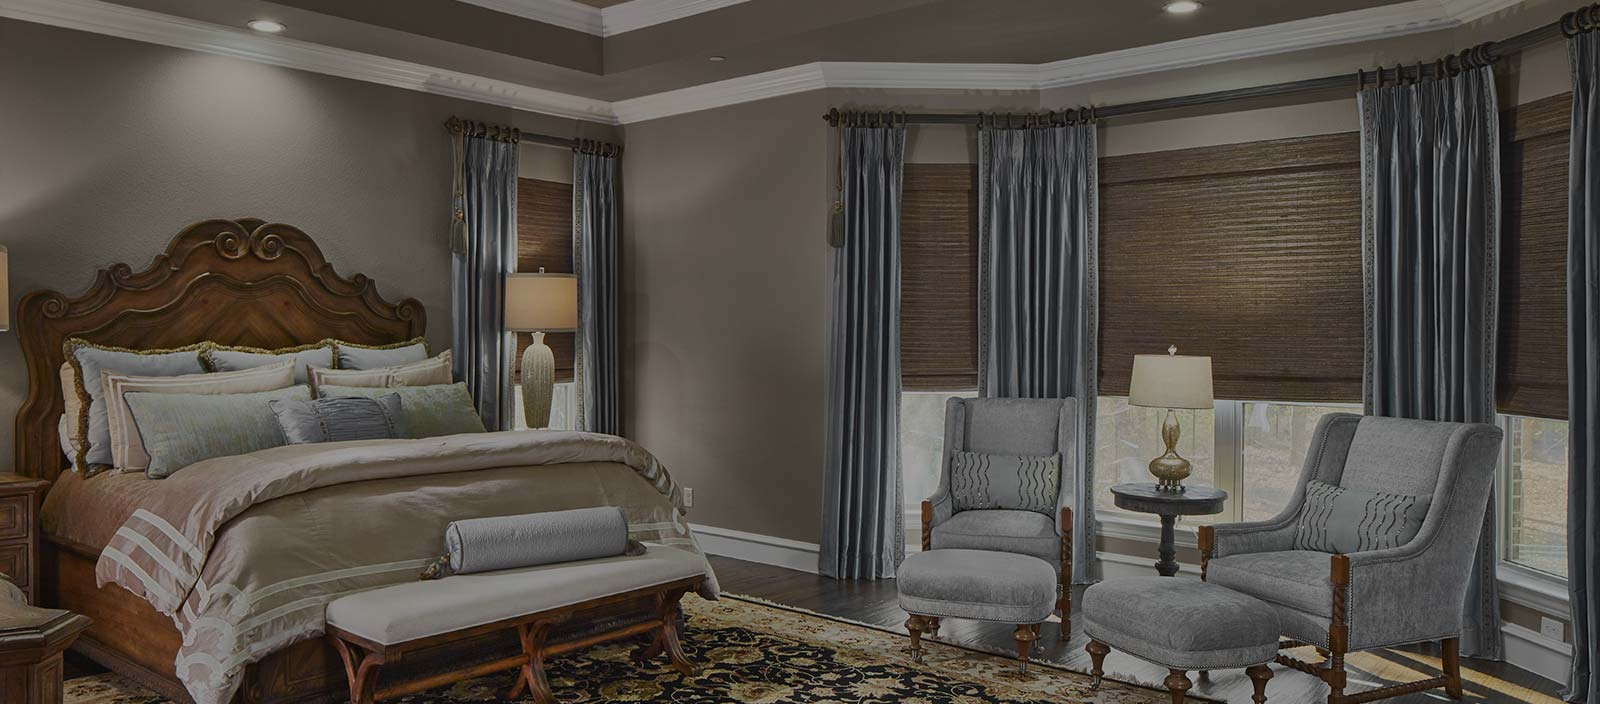 Custom Draperies Dallas Custom Drapes Custom Drapery Designs Dallas Ft Worth Texas